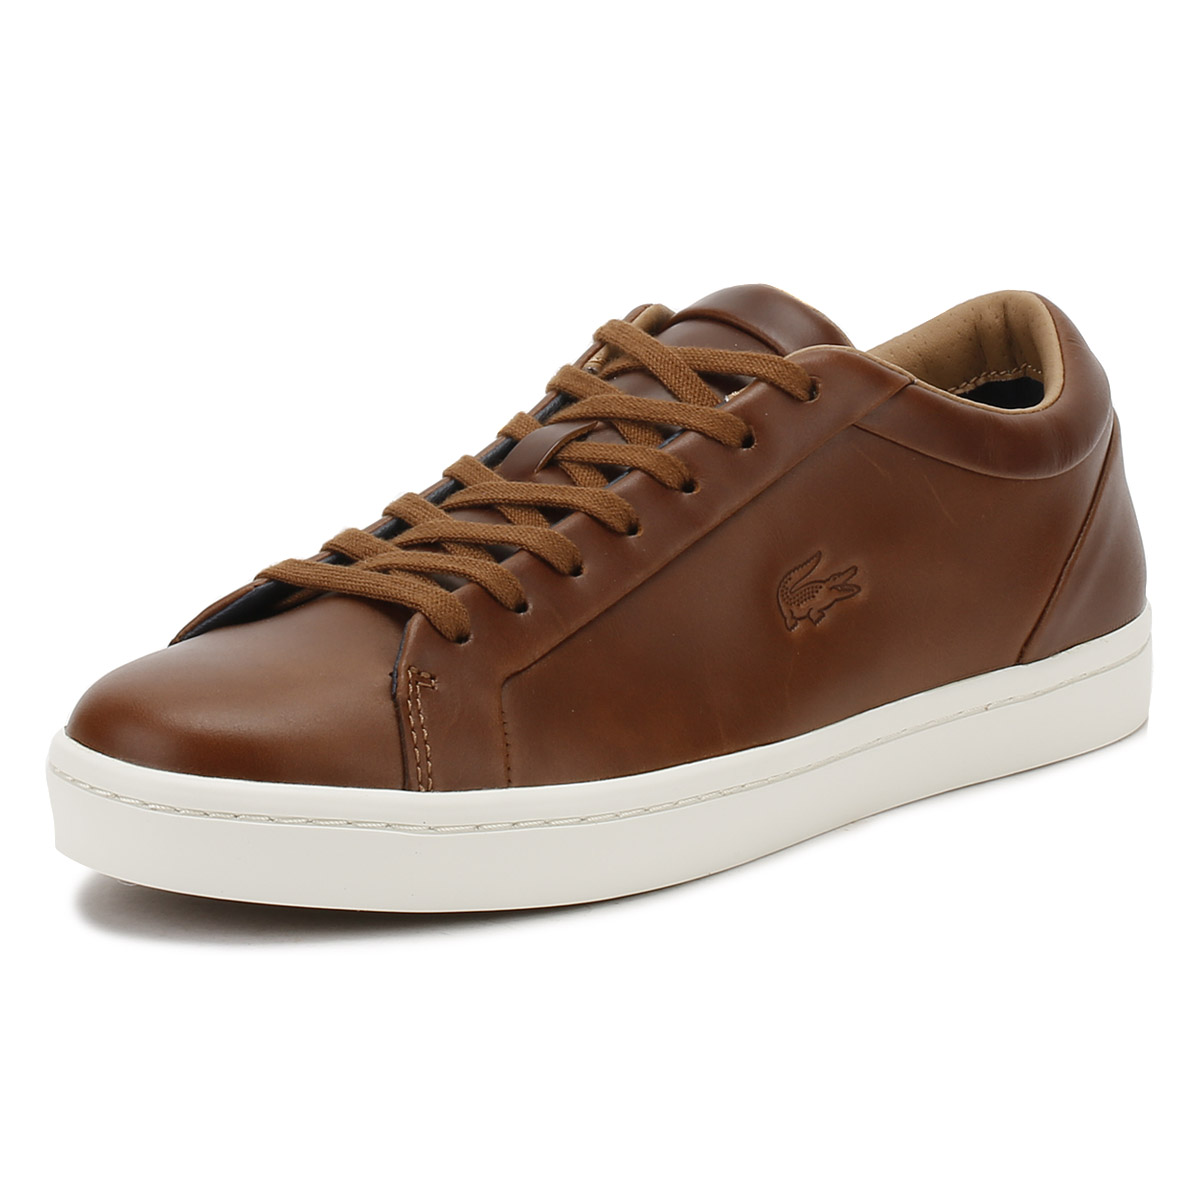 2484f5a5e628c Details about Lacoste Mens Brown Straightset 317 Trainers